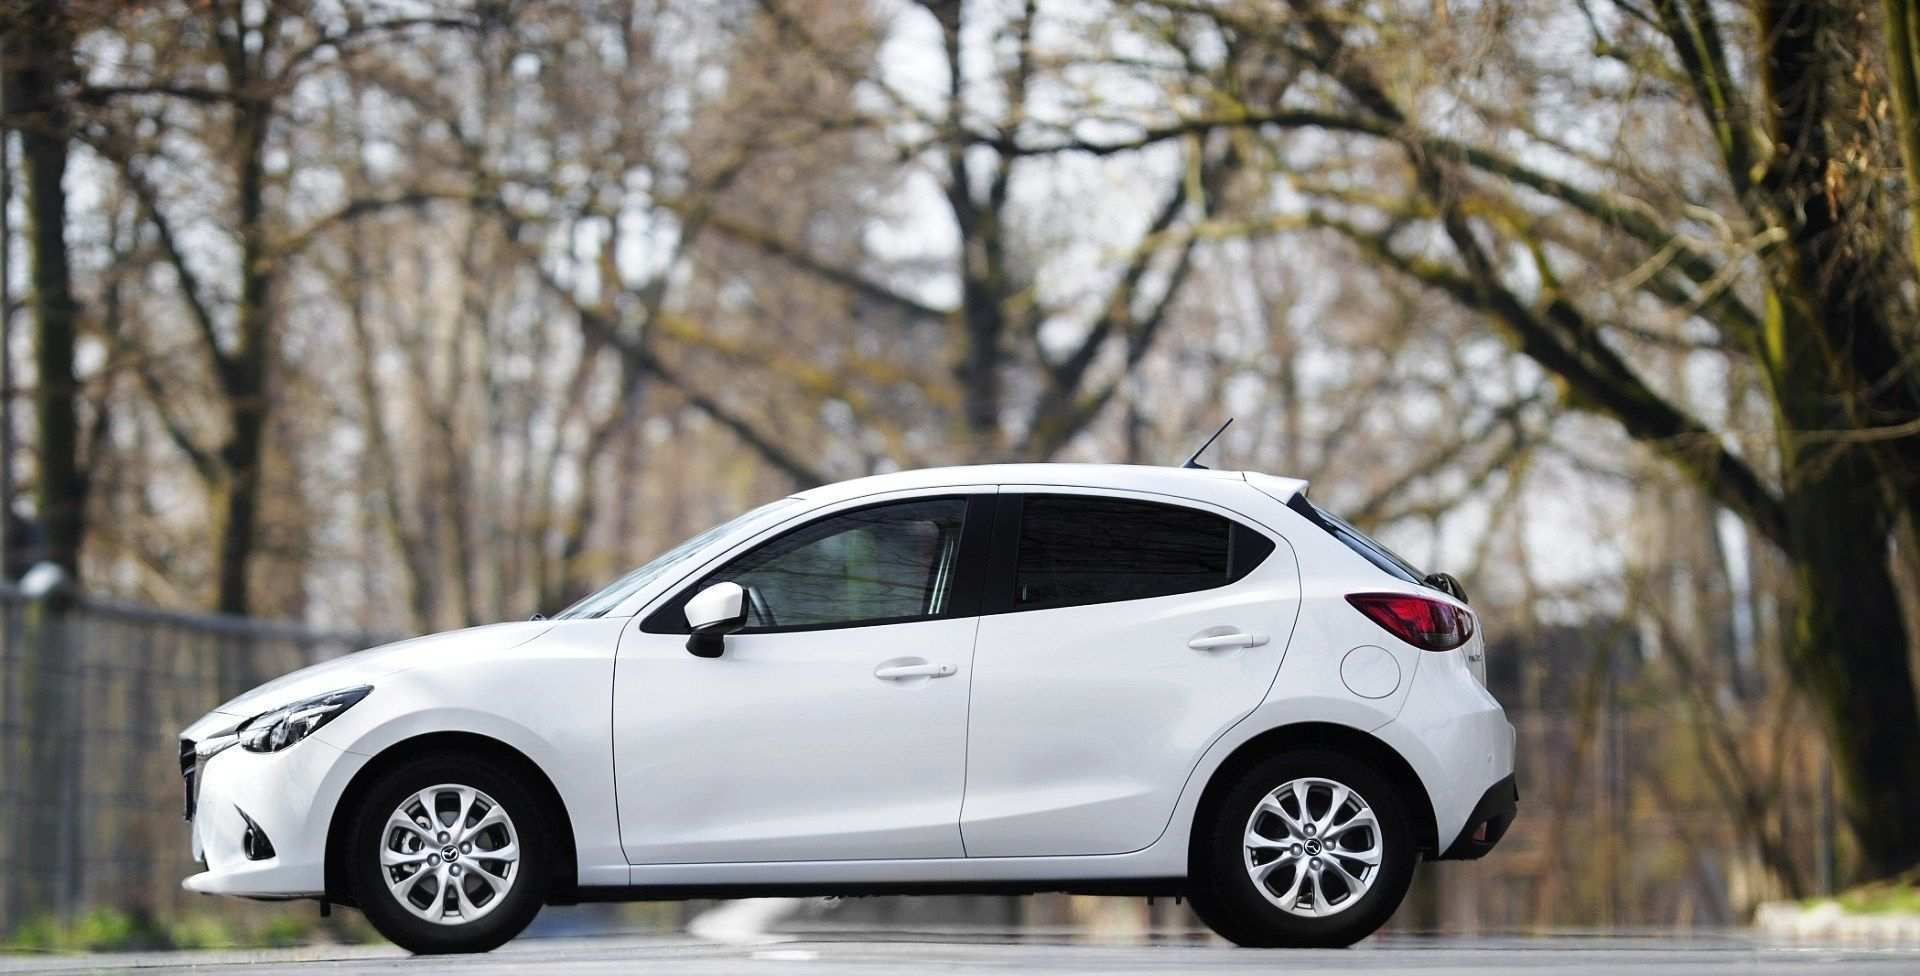 69 Best Review The Mazda 2 2019 Lebanon Specs And Review Overview with The Mazda 2 2019 Lebanon Specs And Review